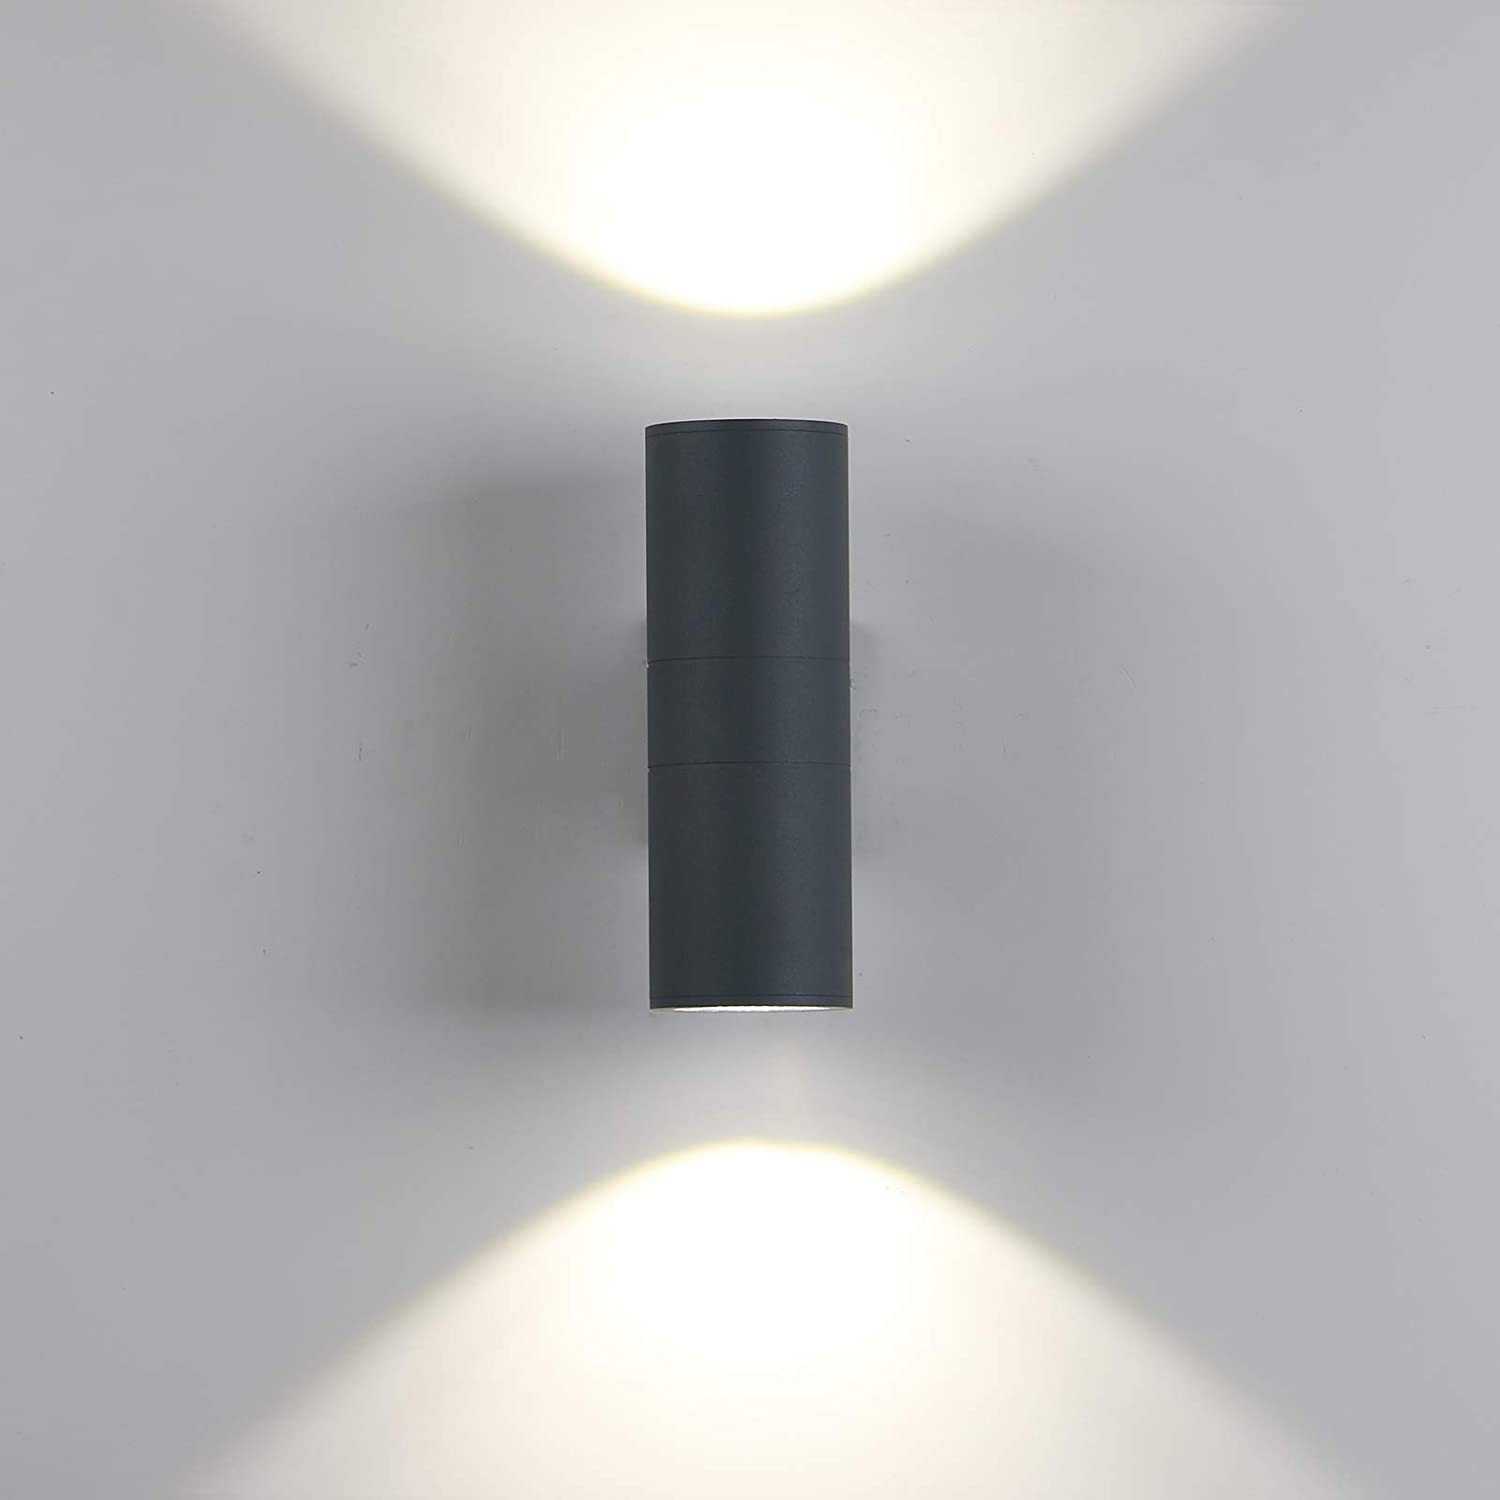 3000K Yosoan Modern Black Double Up Down Outdoor Stainless Steel Wall Light,IP65 LED Wall Lamp